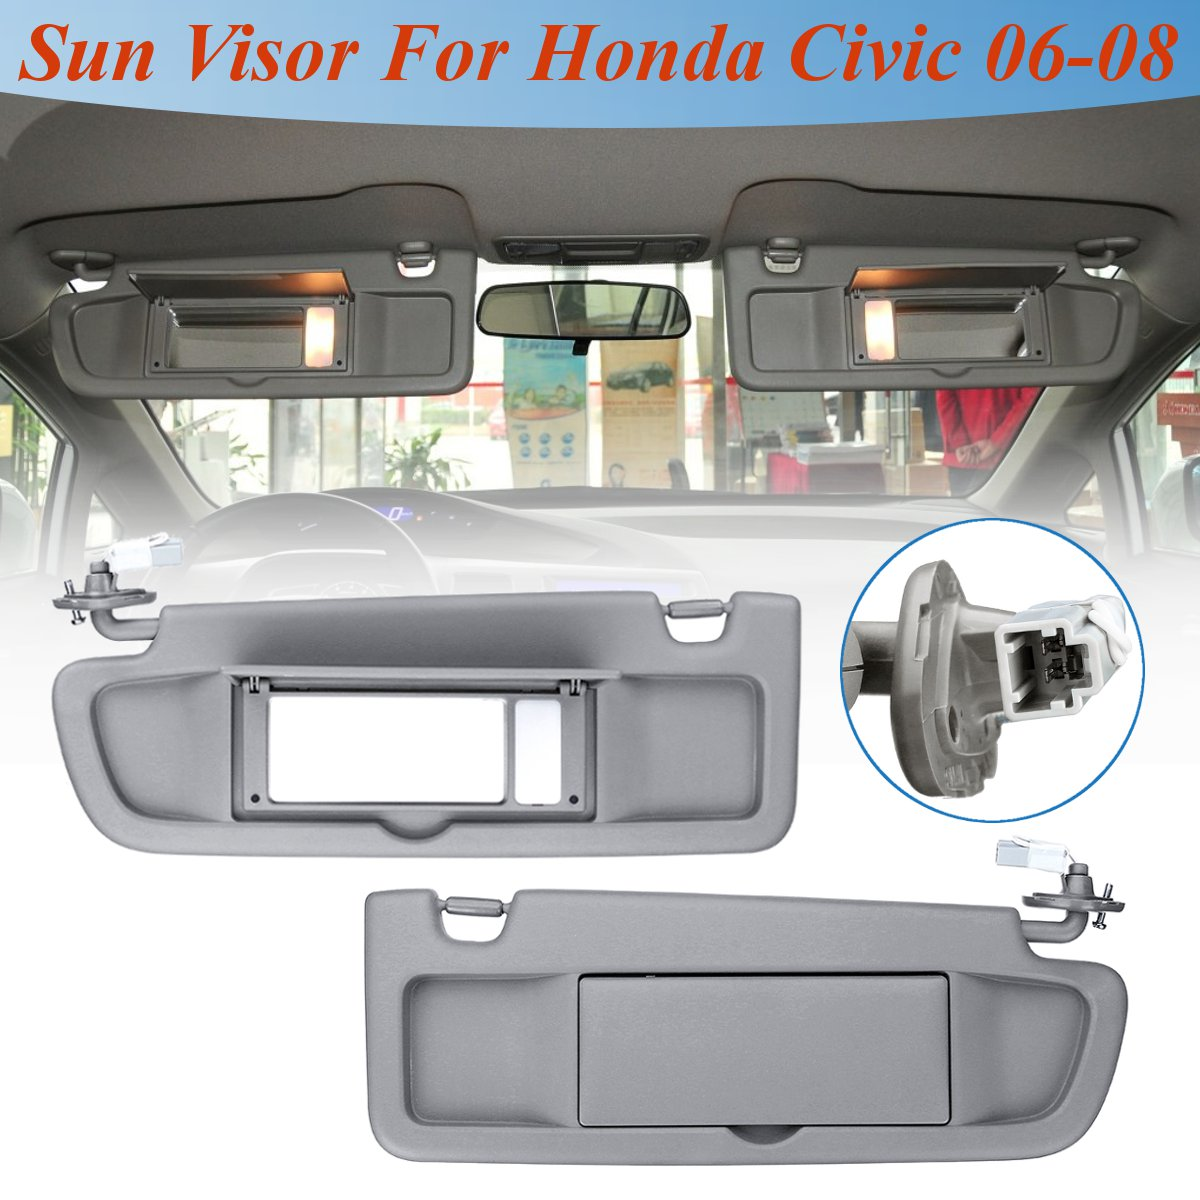 For Honda for Civic for Coupe Sedan 2006 2007 2008 Car LHD Sunvisor  Sunshade 1 Pcs Sun Shield Antidazzle Visor With Lamp Styling-in Sun Visors  from ... a91469d7db0